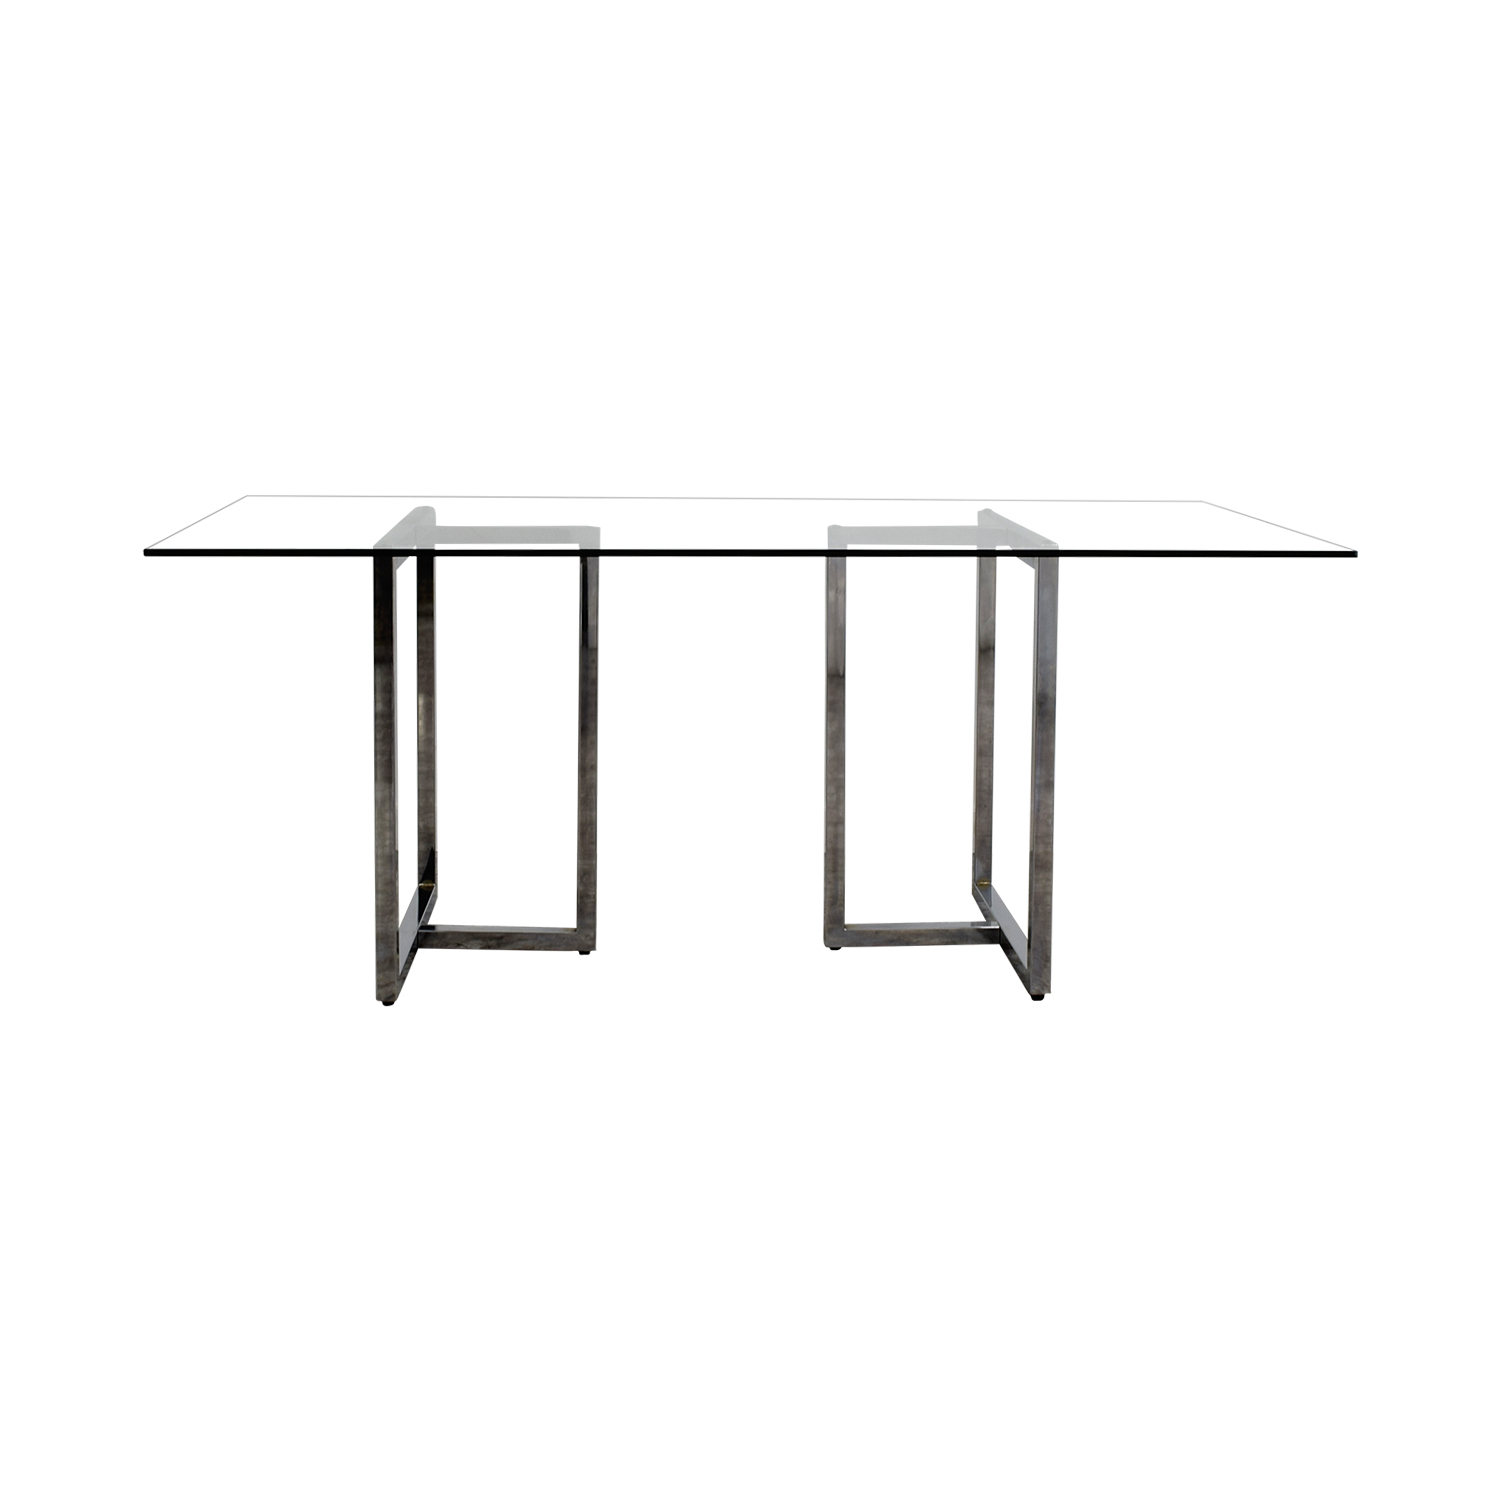 CB2 CB2 Silverado Rectangular Glass and Chrome Dining Table coupon